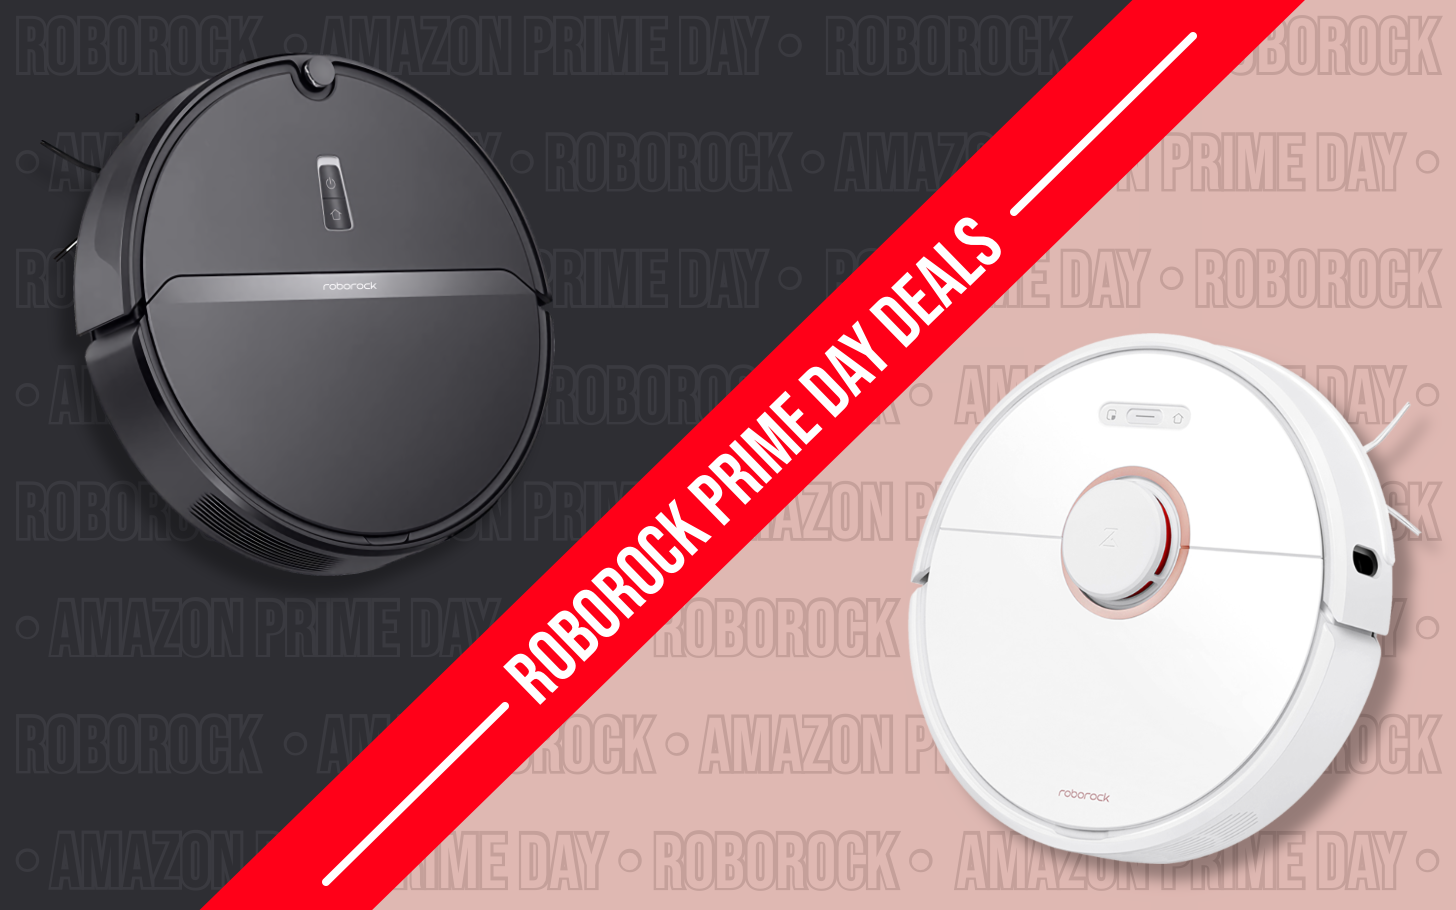 Save up to 0 on Roborock's most affordable robotic vacuums